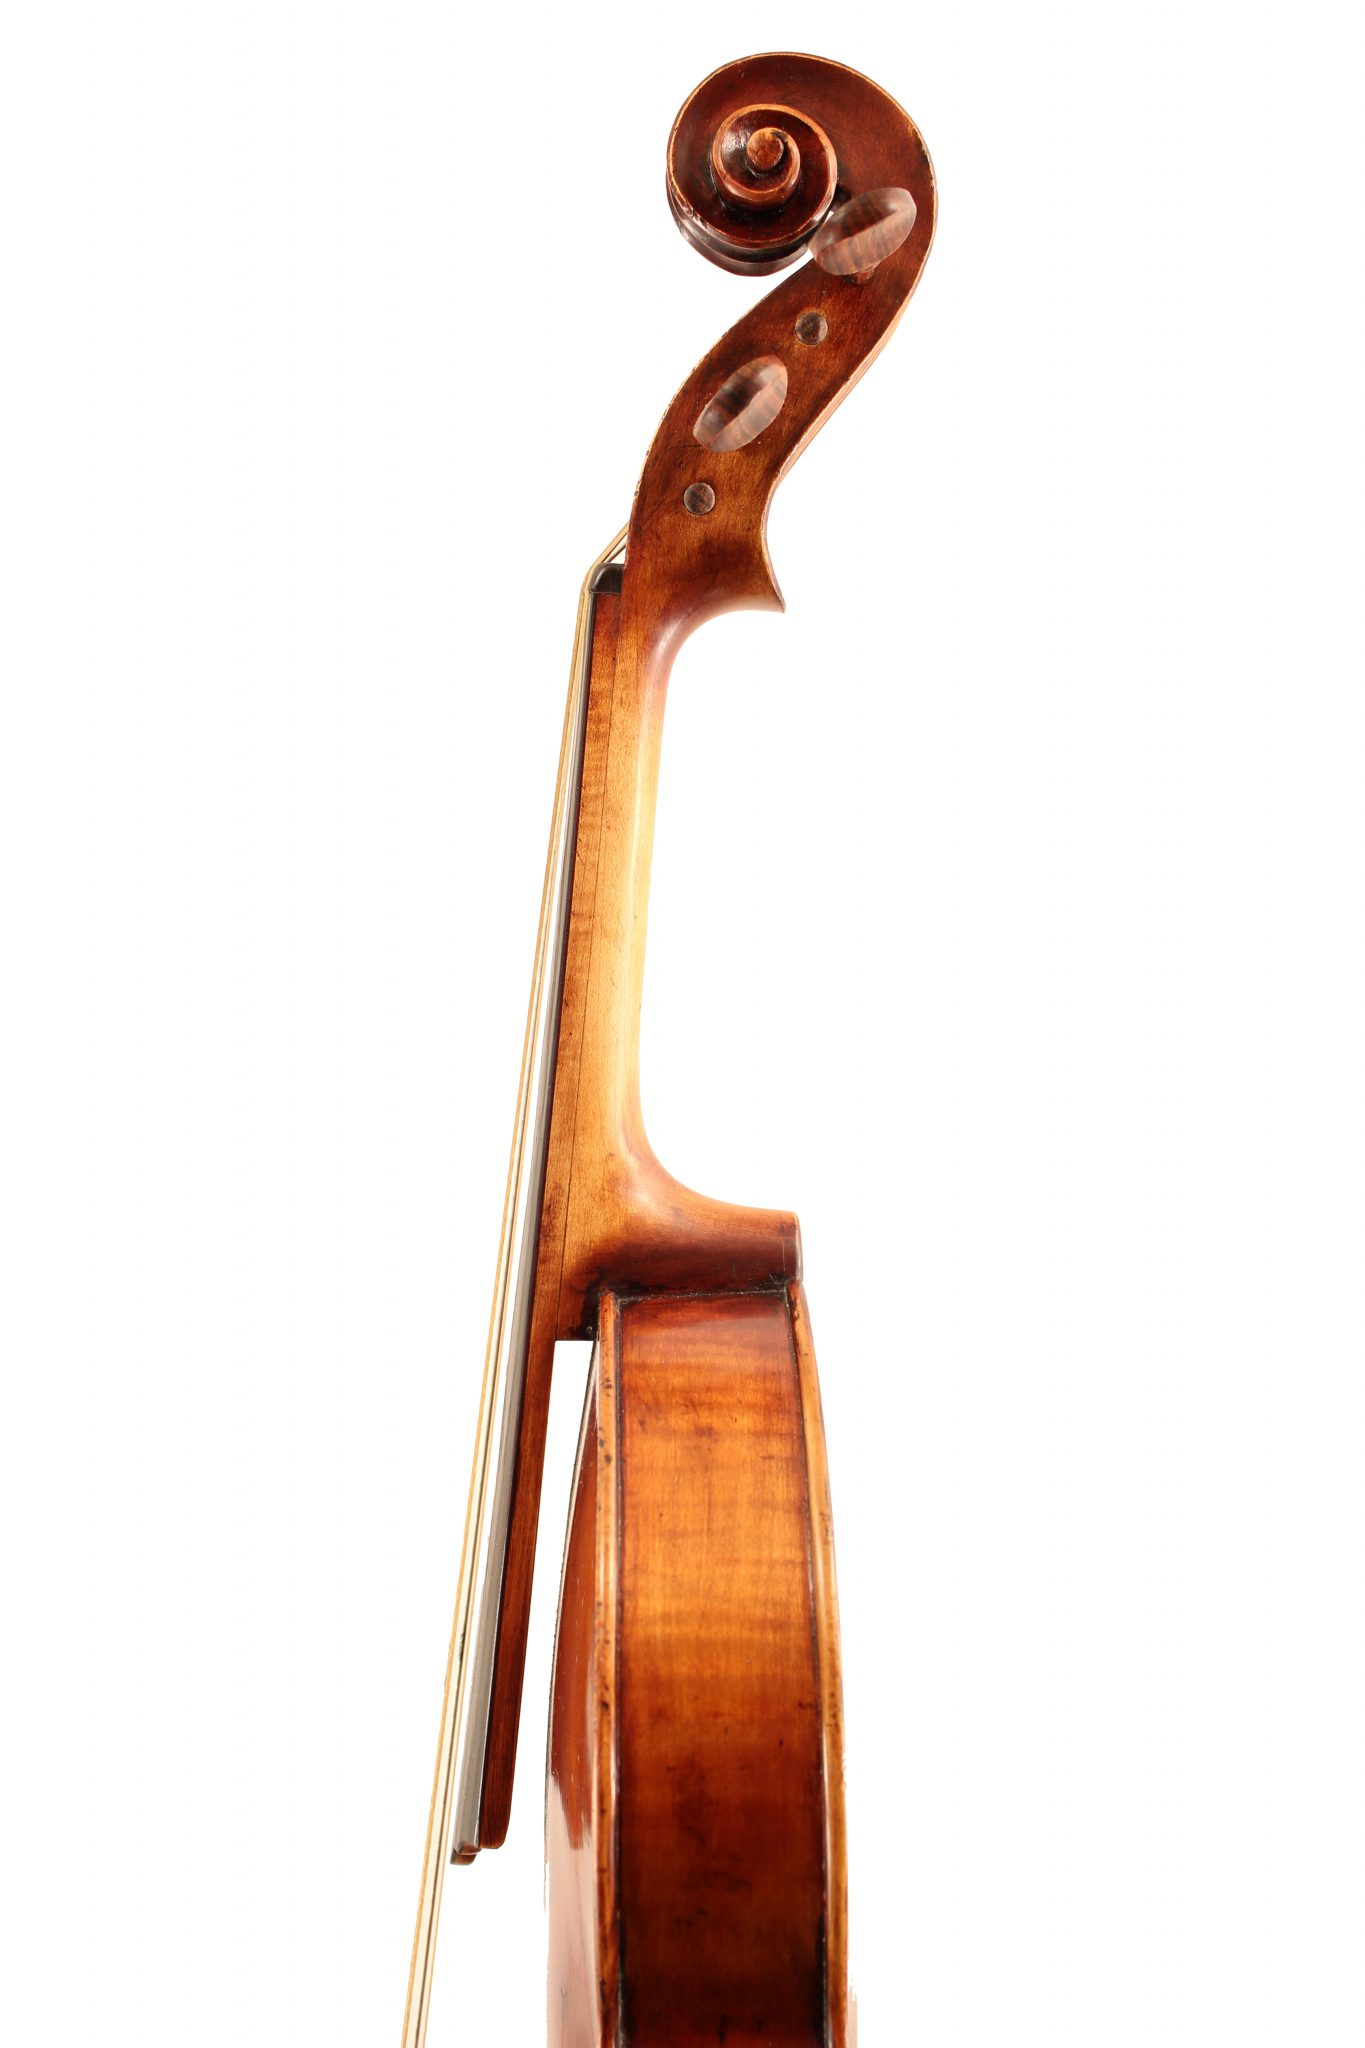 baroque viola by Matthias Kayssler 2016 for sale at Bridgewood and Neitzert London